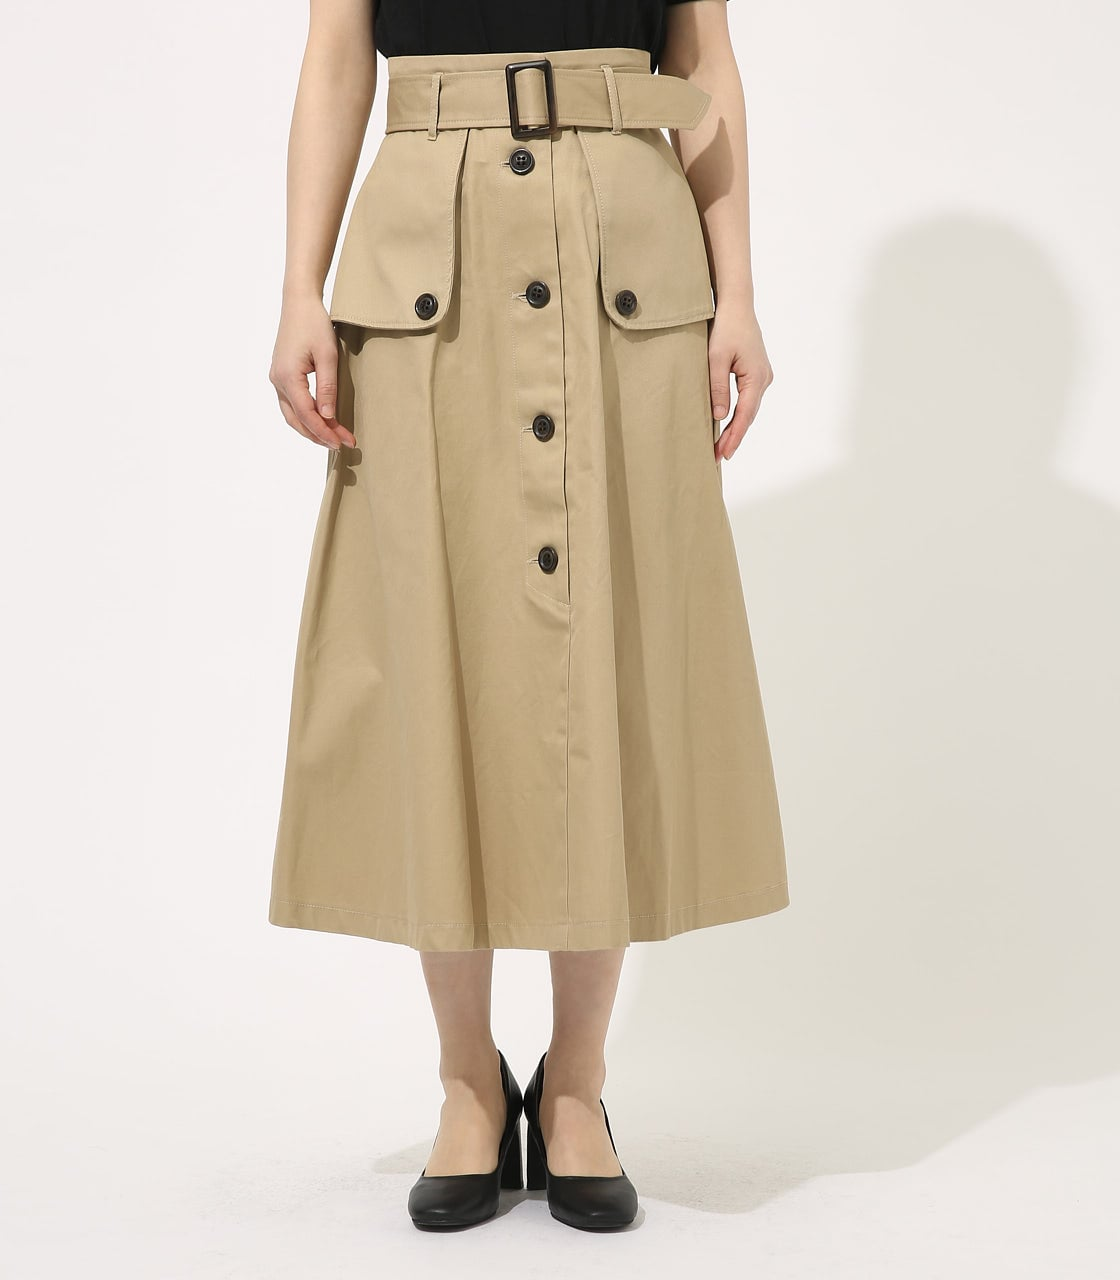 【AZUL BY MOUSSY】TRENCH FLARE SKIRT 詳細画像 BEG 4